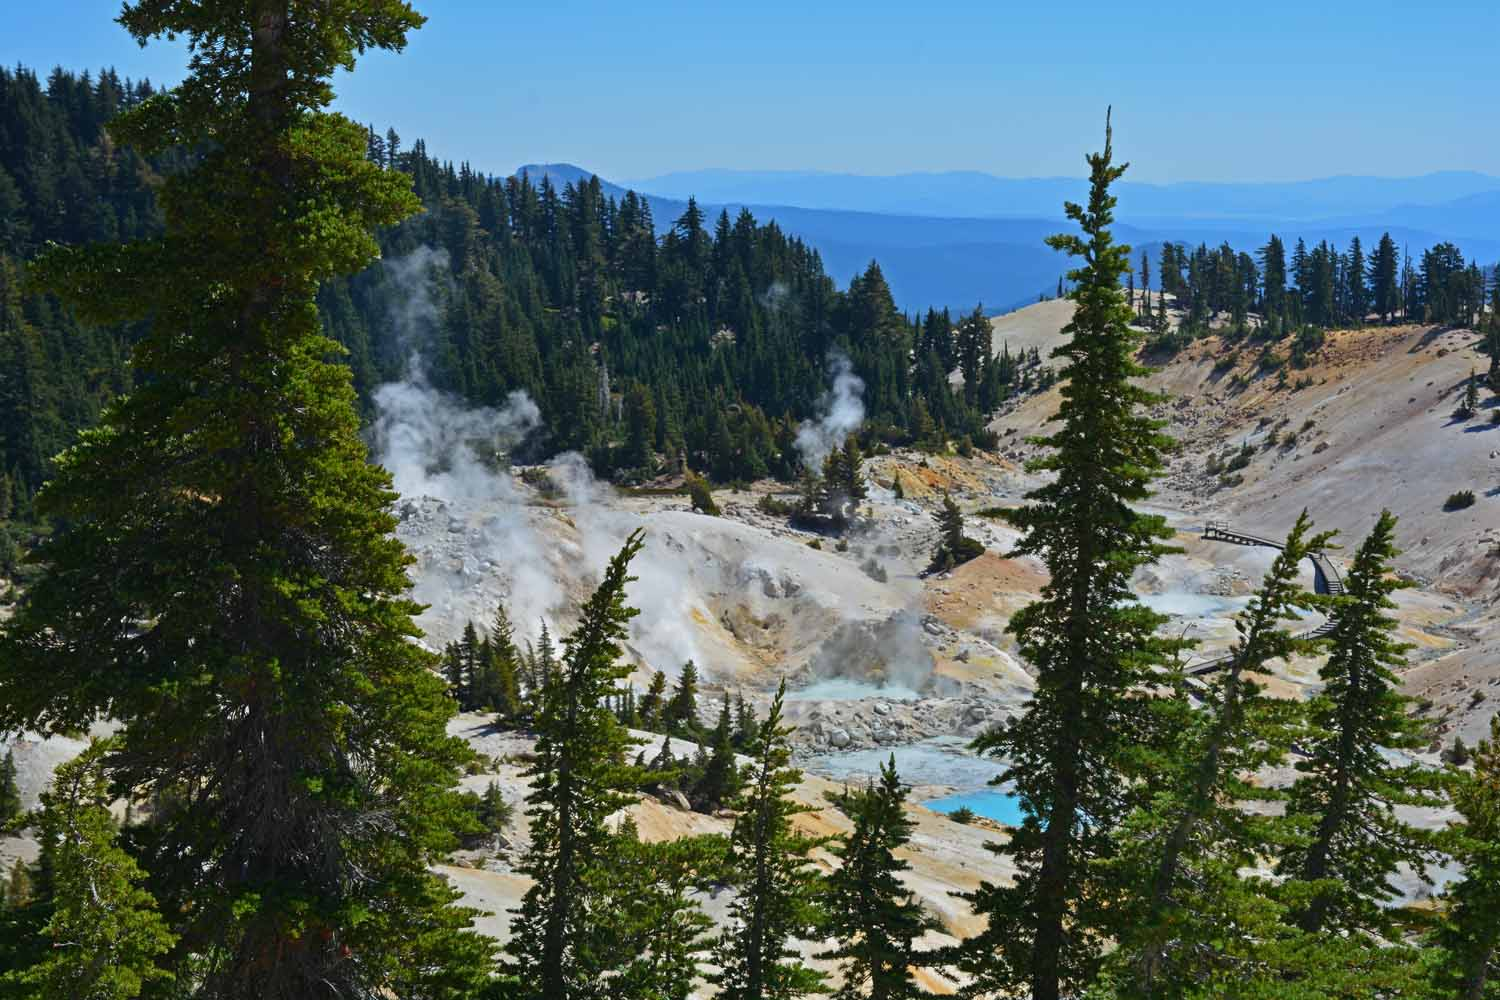 This park has many active hydrothermal areas.